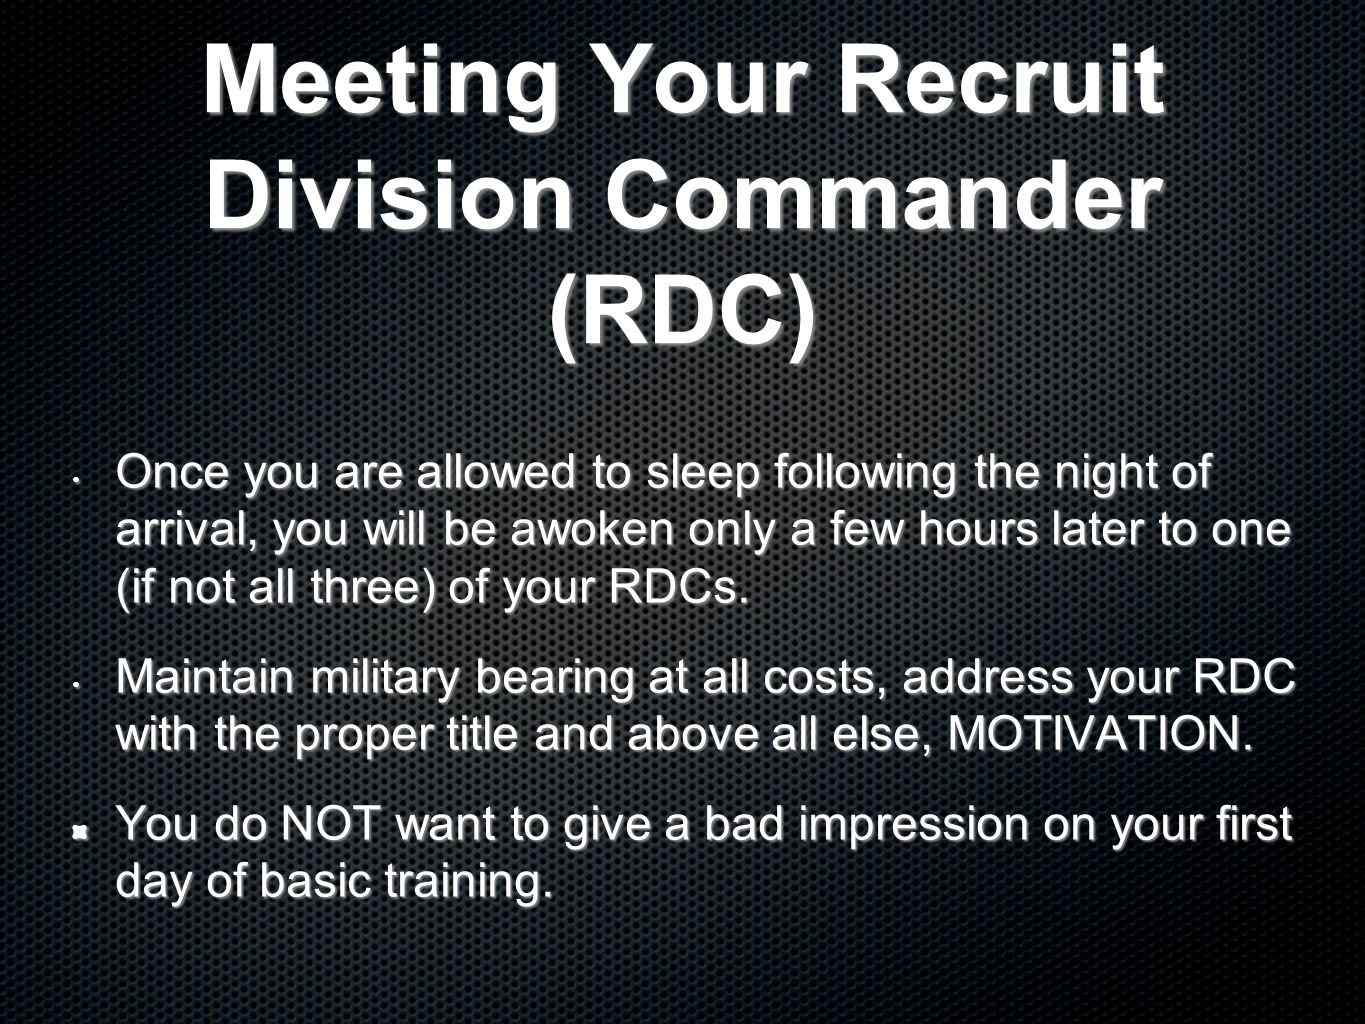 Meeting Your Recruit Division Commander (RDC) Once you are allowed to sleep following the night of arrival, you will be awoken only a few hours later to one (if not all three) of your RDCs.